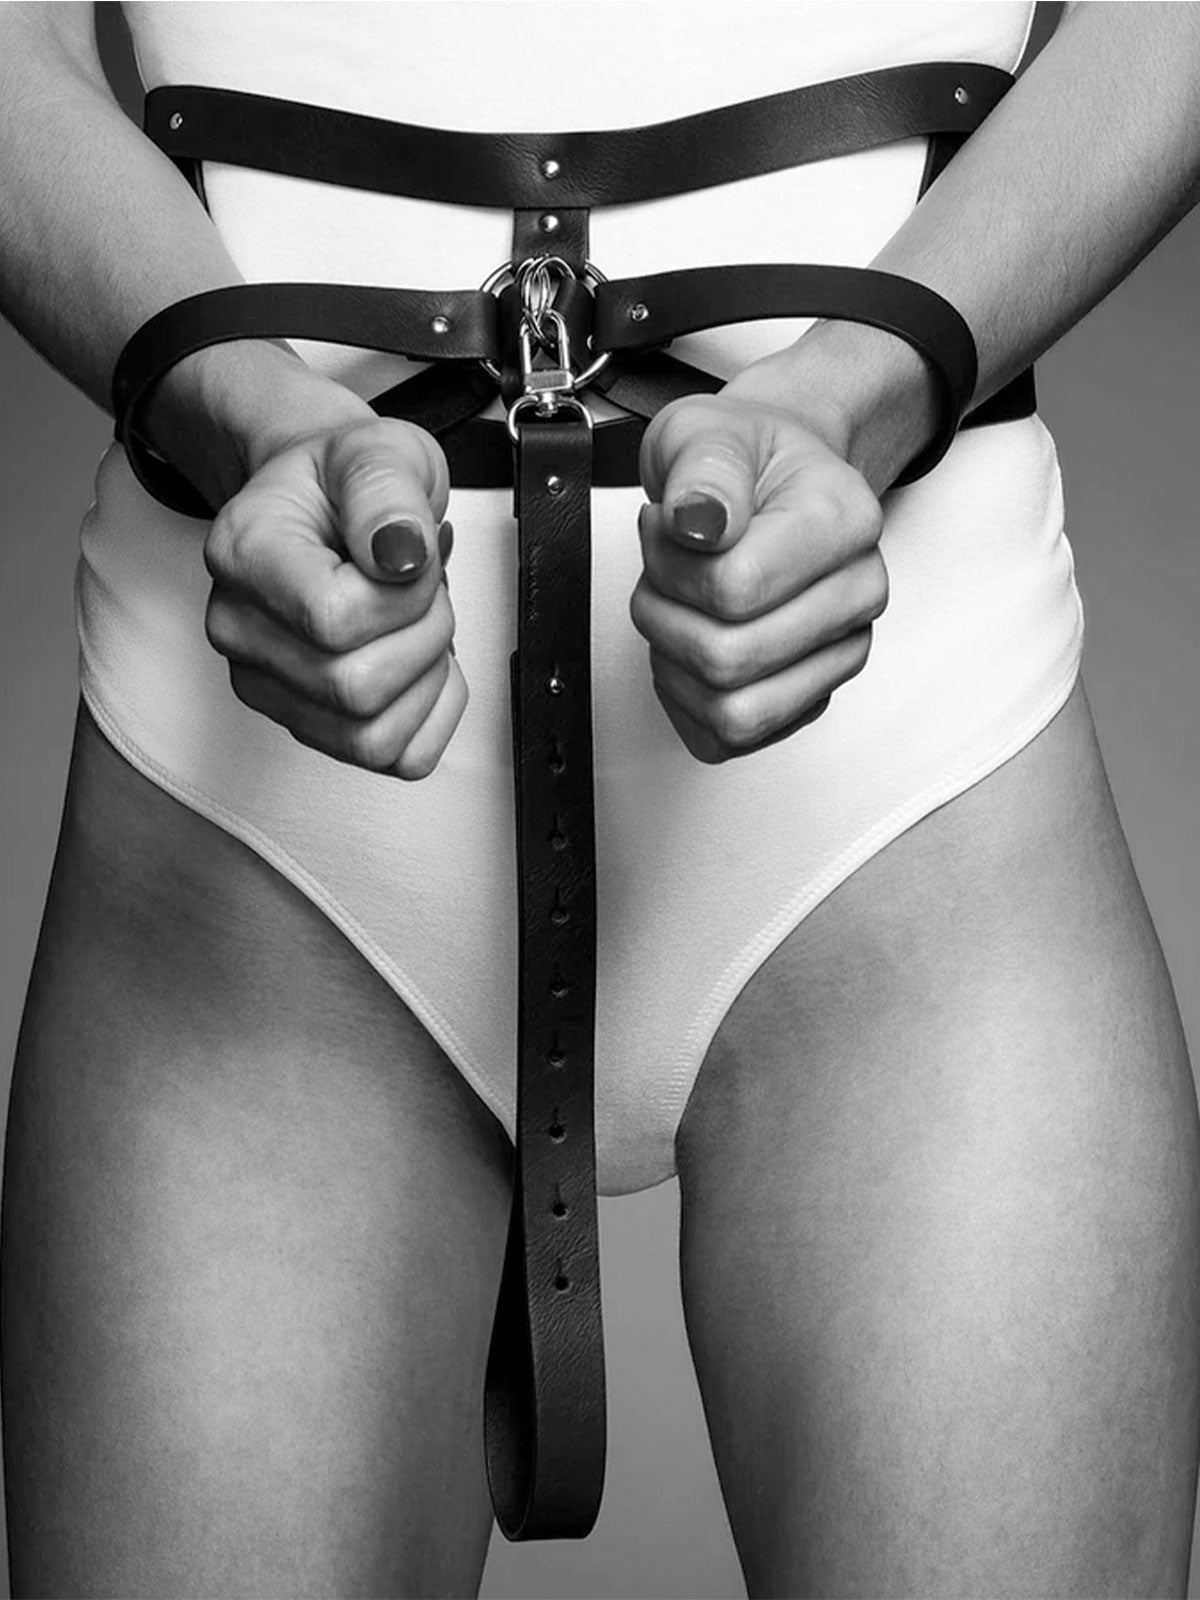 Wide Belt and Cuff Restraints